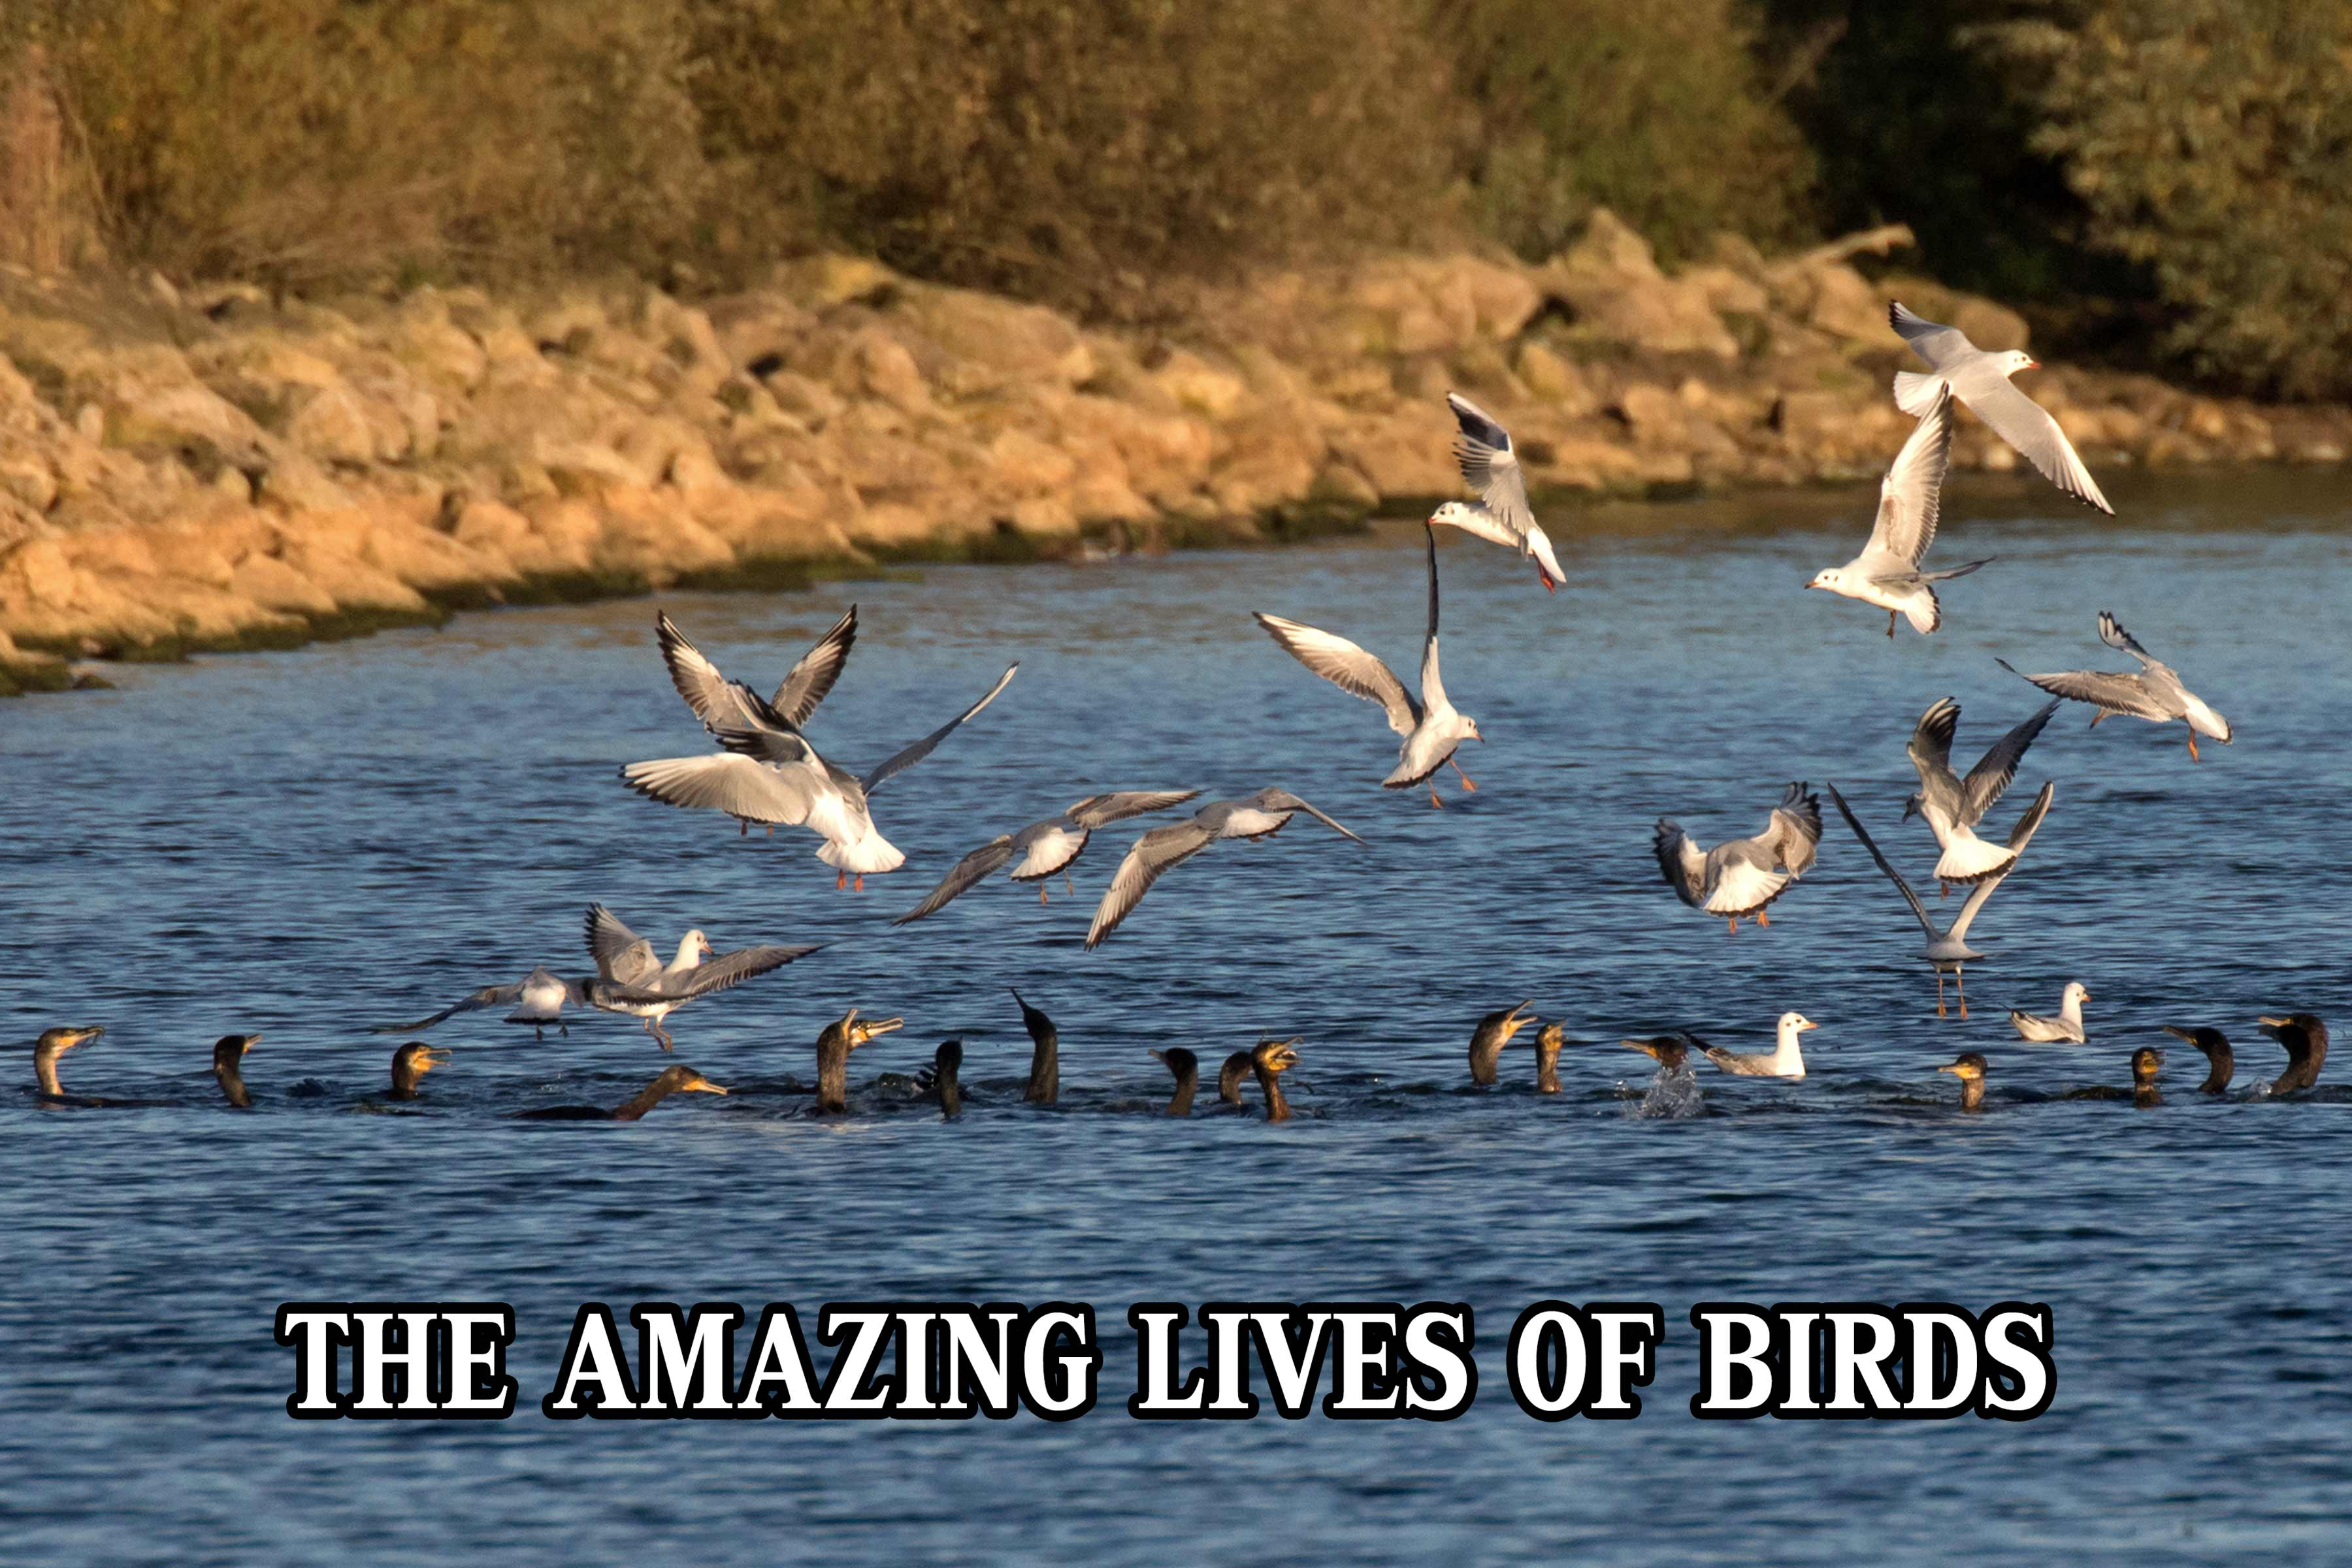 The Amazing Lives of Birds